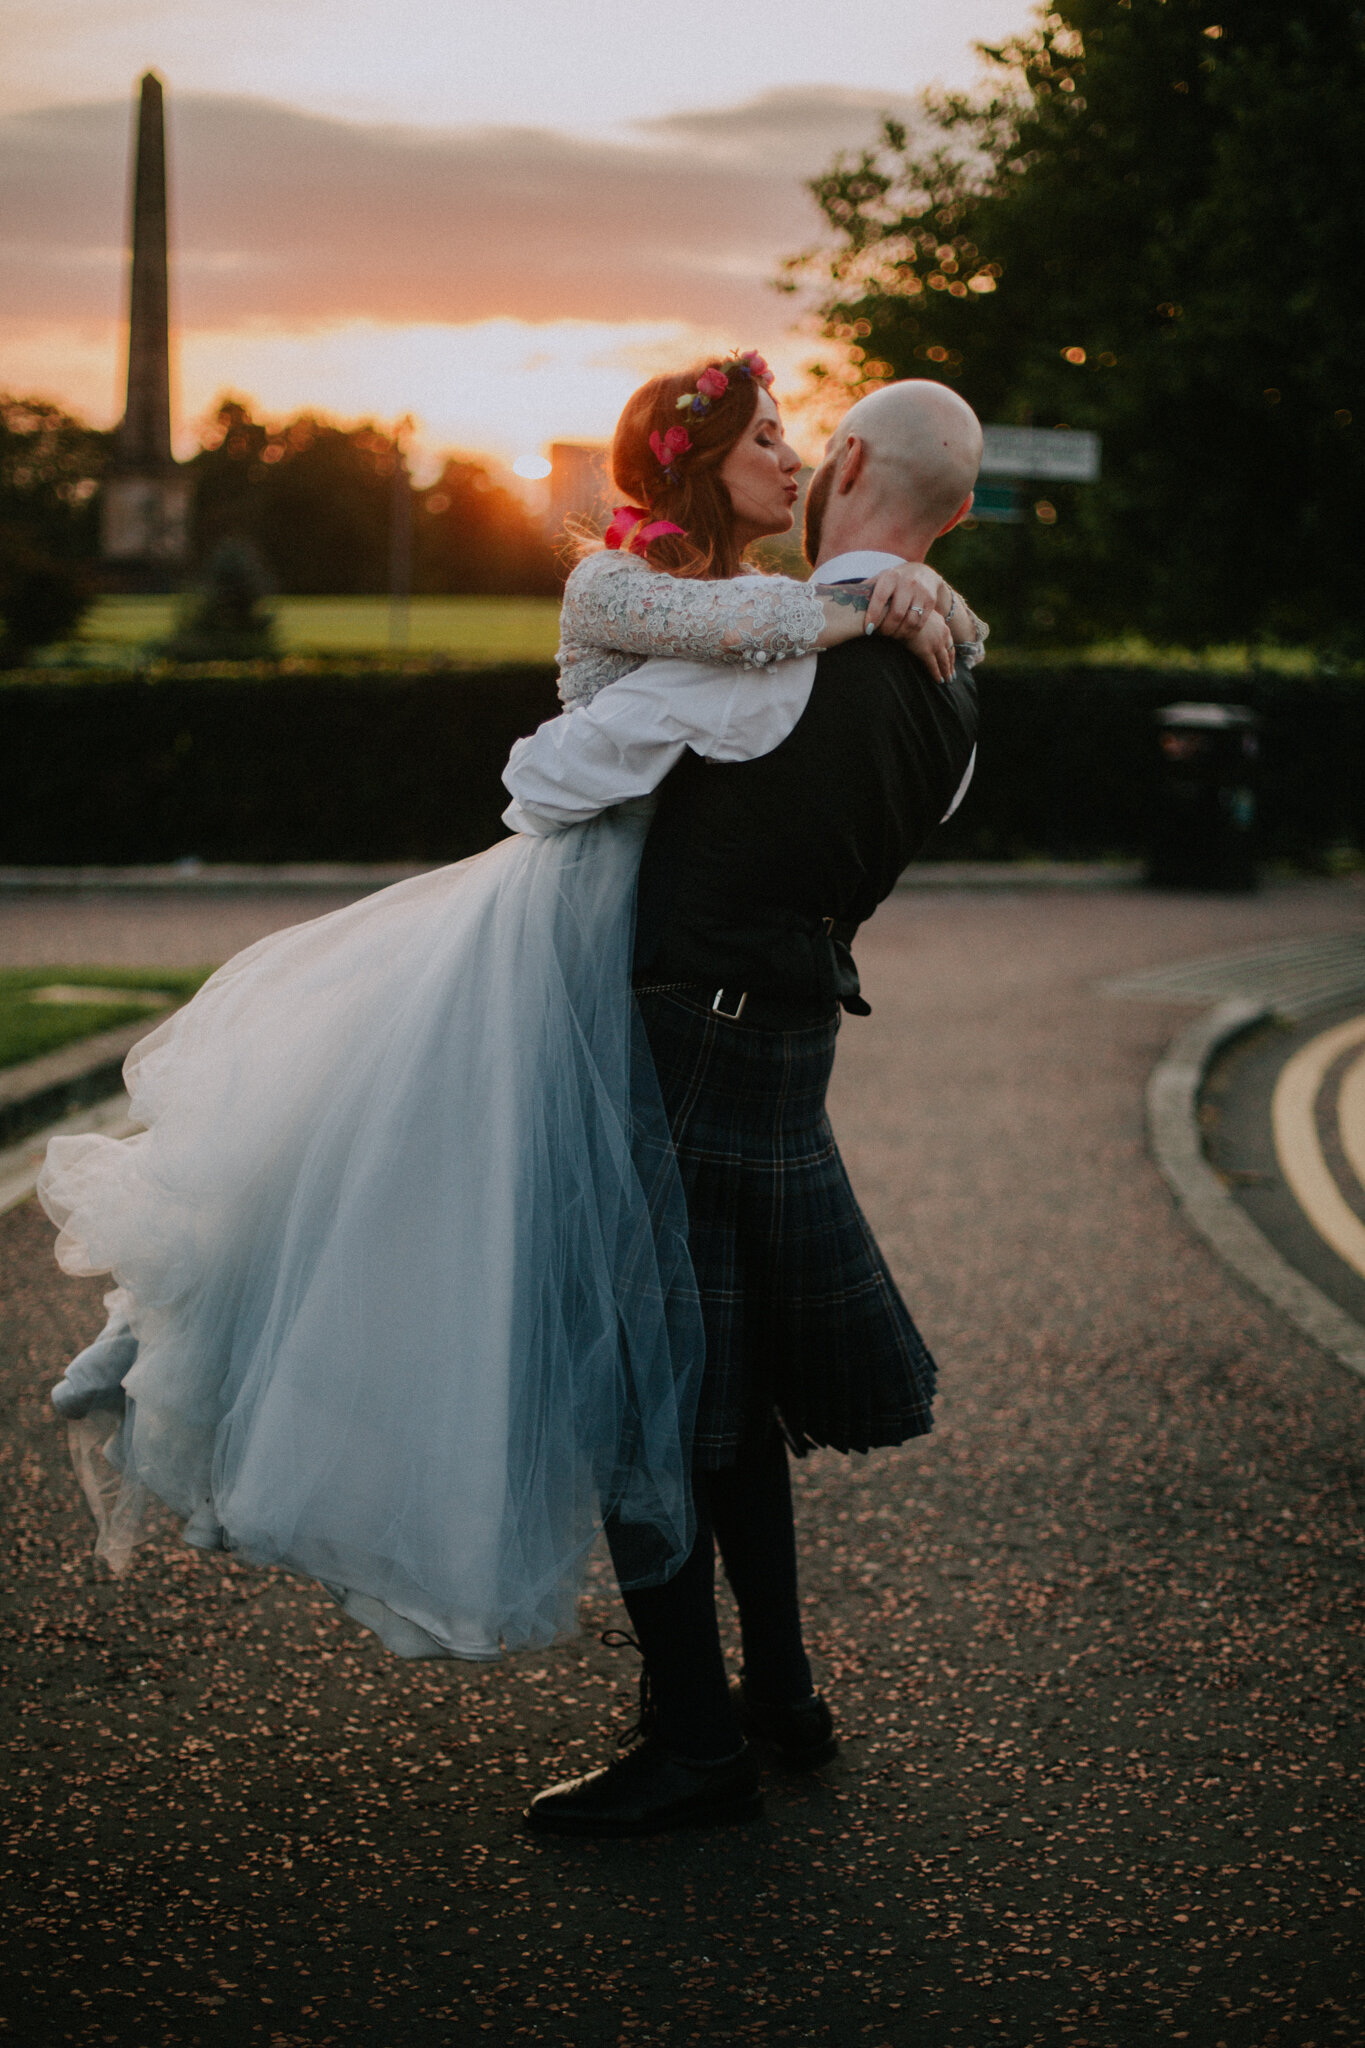 Wedding photography prices in Scotland, Glasgow